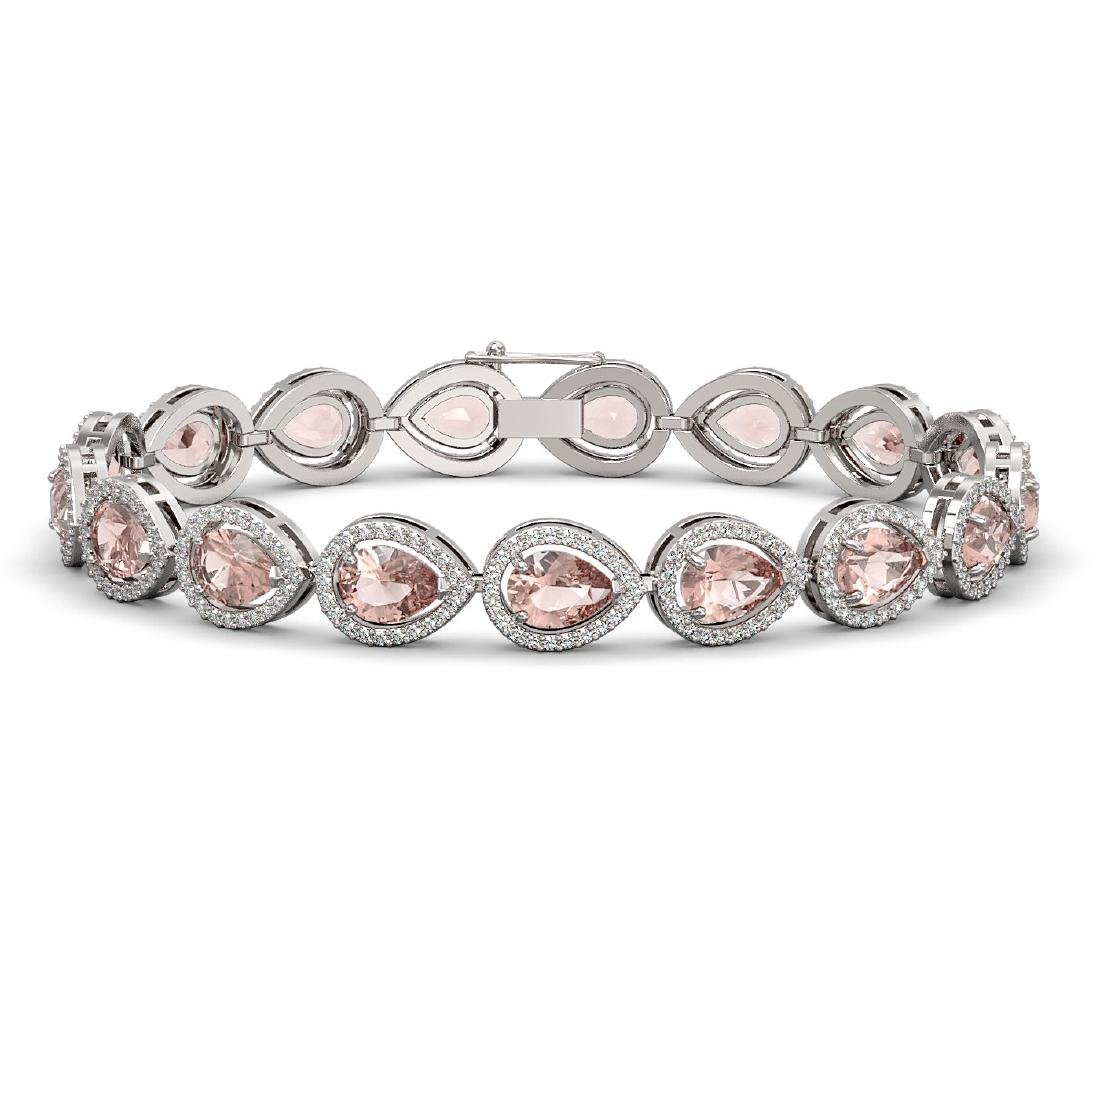 16.59 CTW Morganite & Diamond Halo Bracelet 10K White